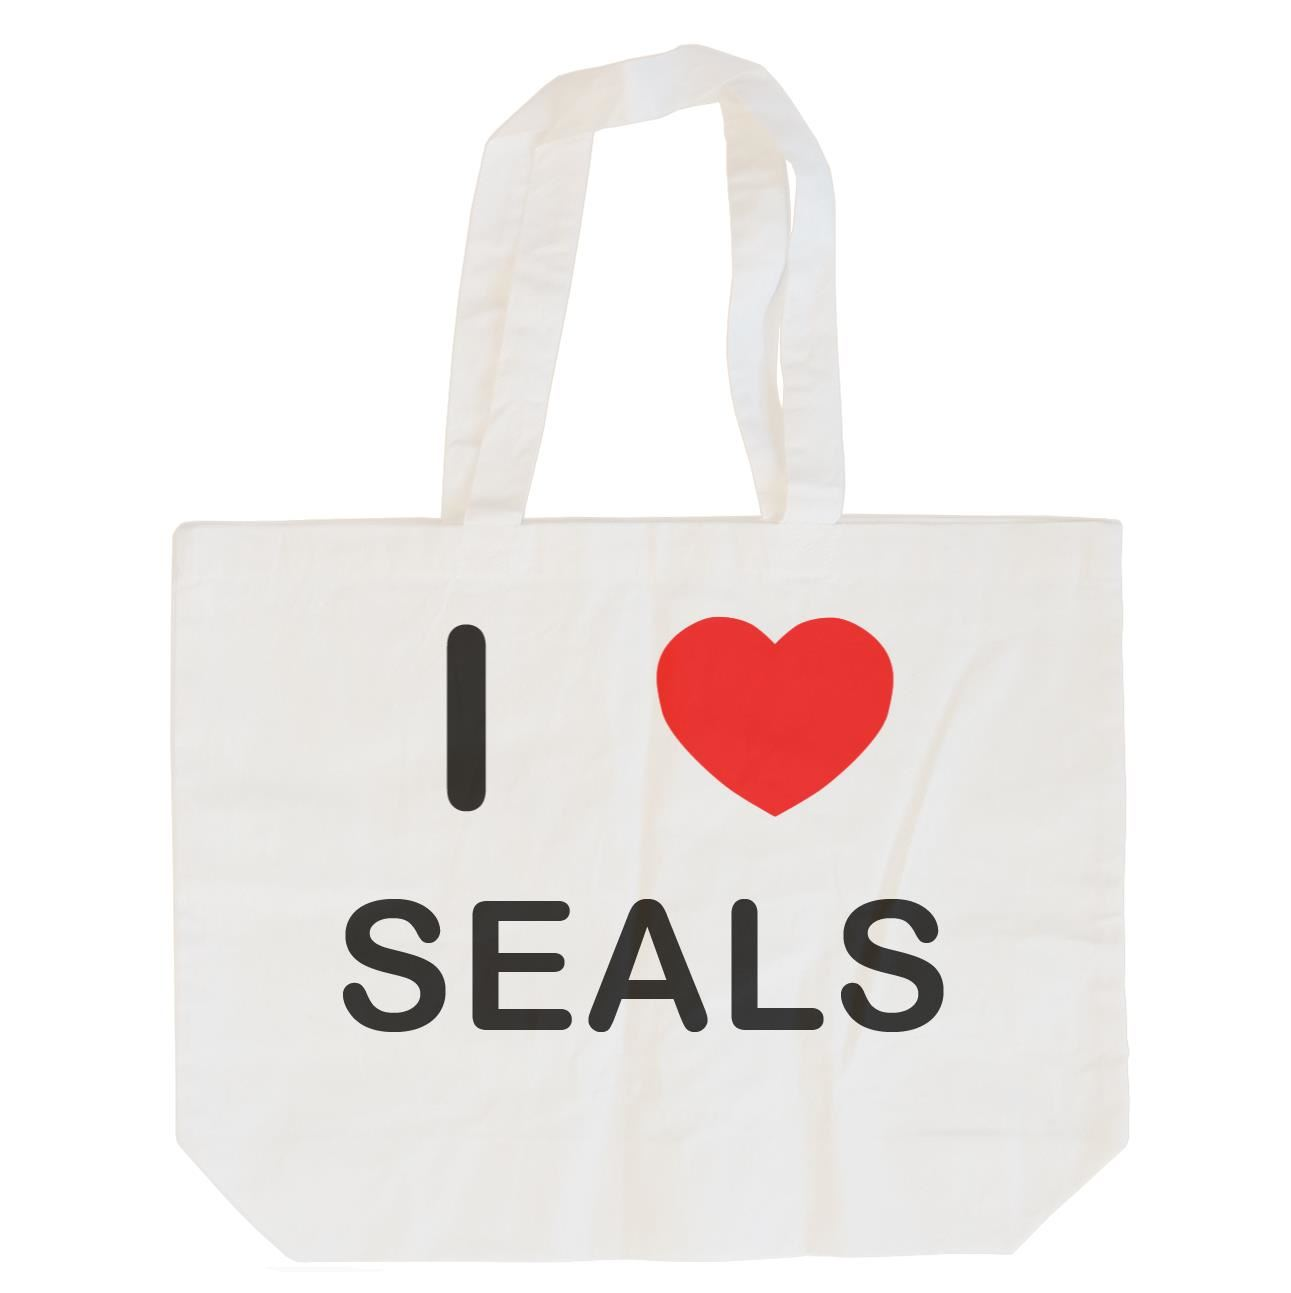 I Love Seals - Cotton Bag | Size choice Tote, Shopper or Sling